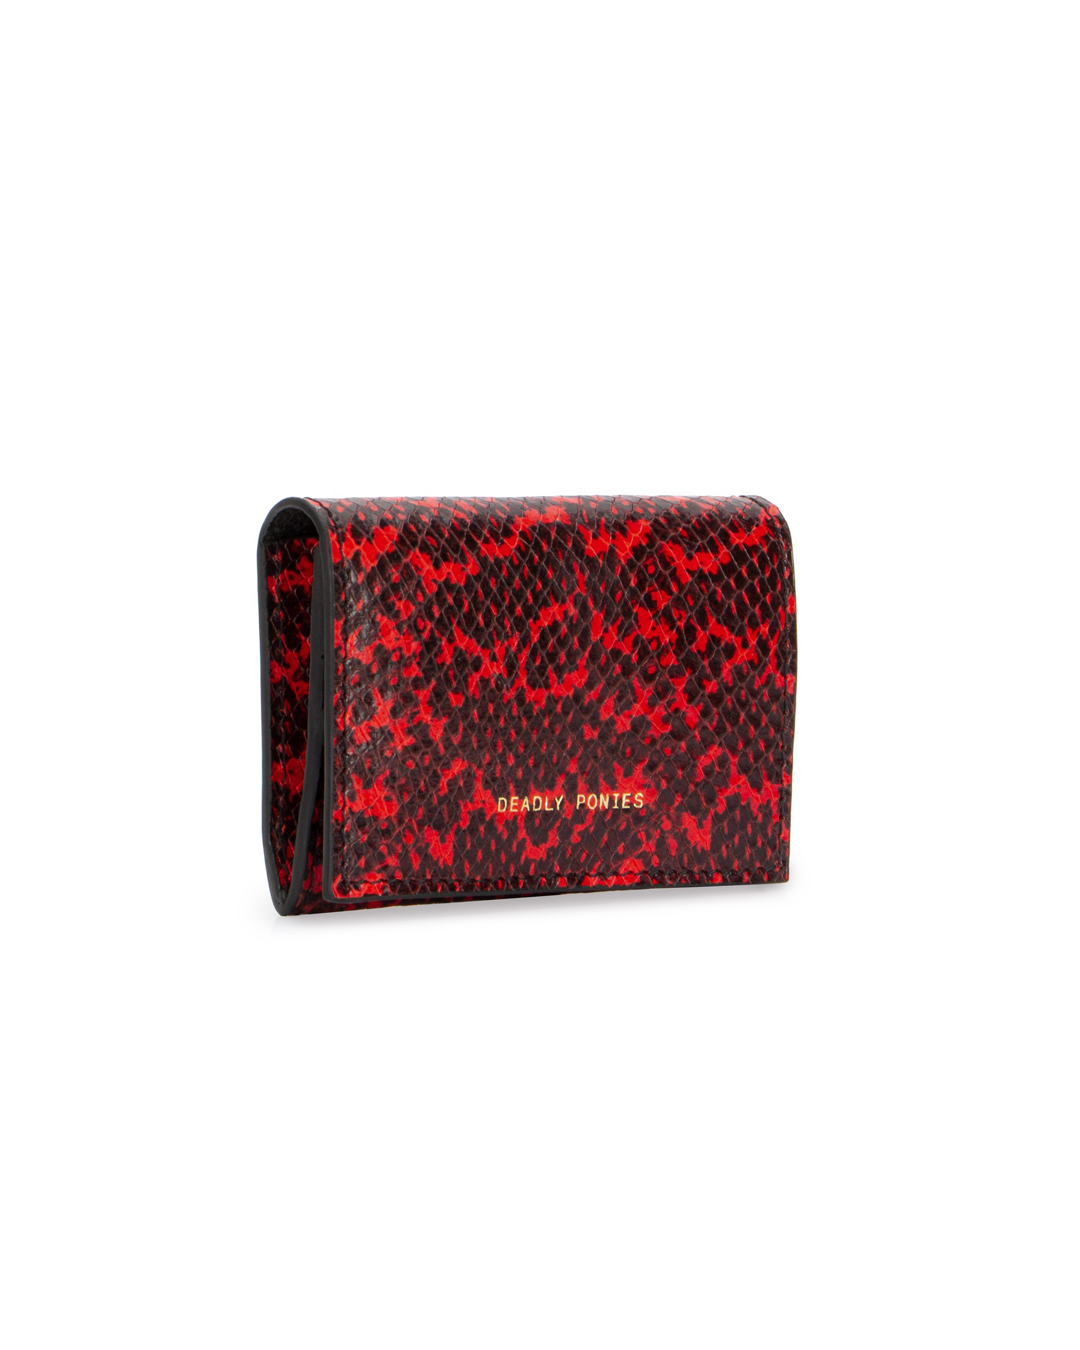 A black and red snakeskin-style wallet from Deadly Ponies